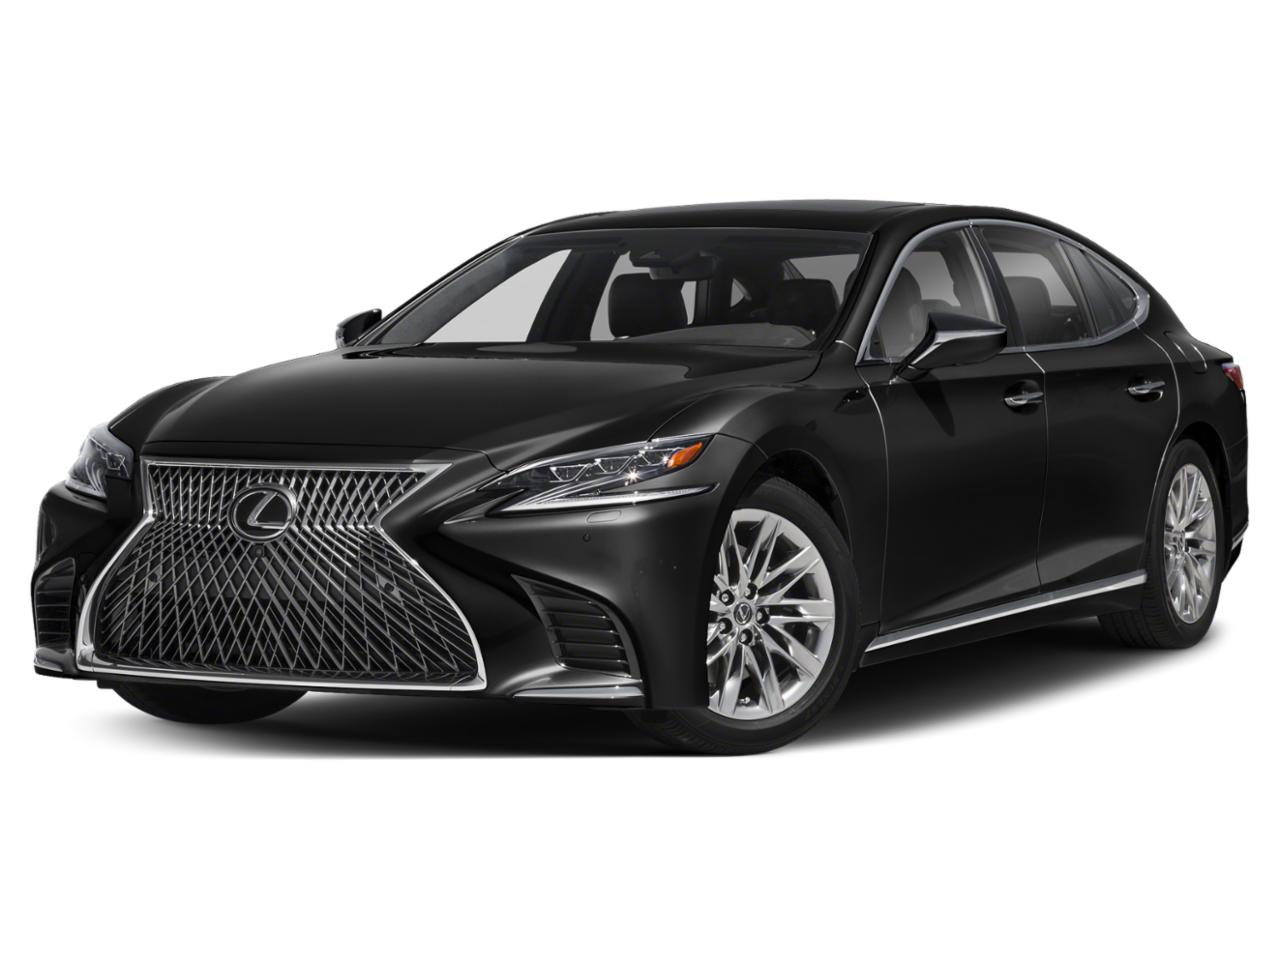 2020 Lexus LS 500 Vehicle Photo in Tucson, AZ 85712